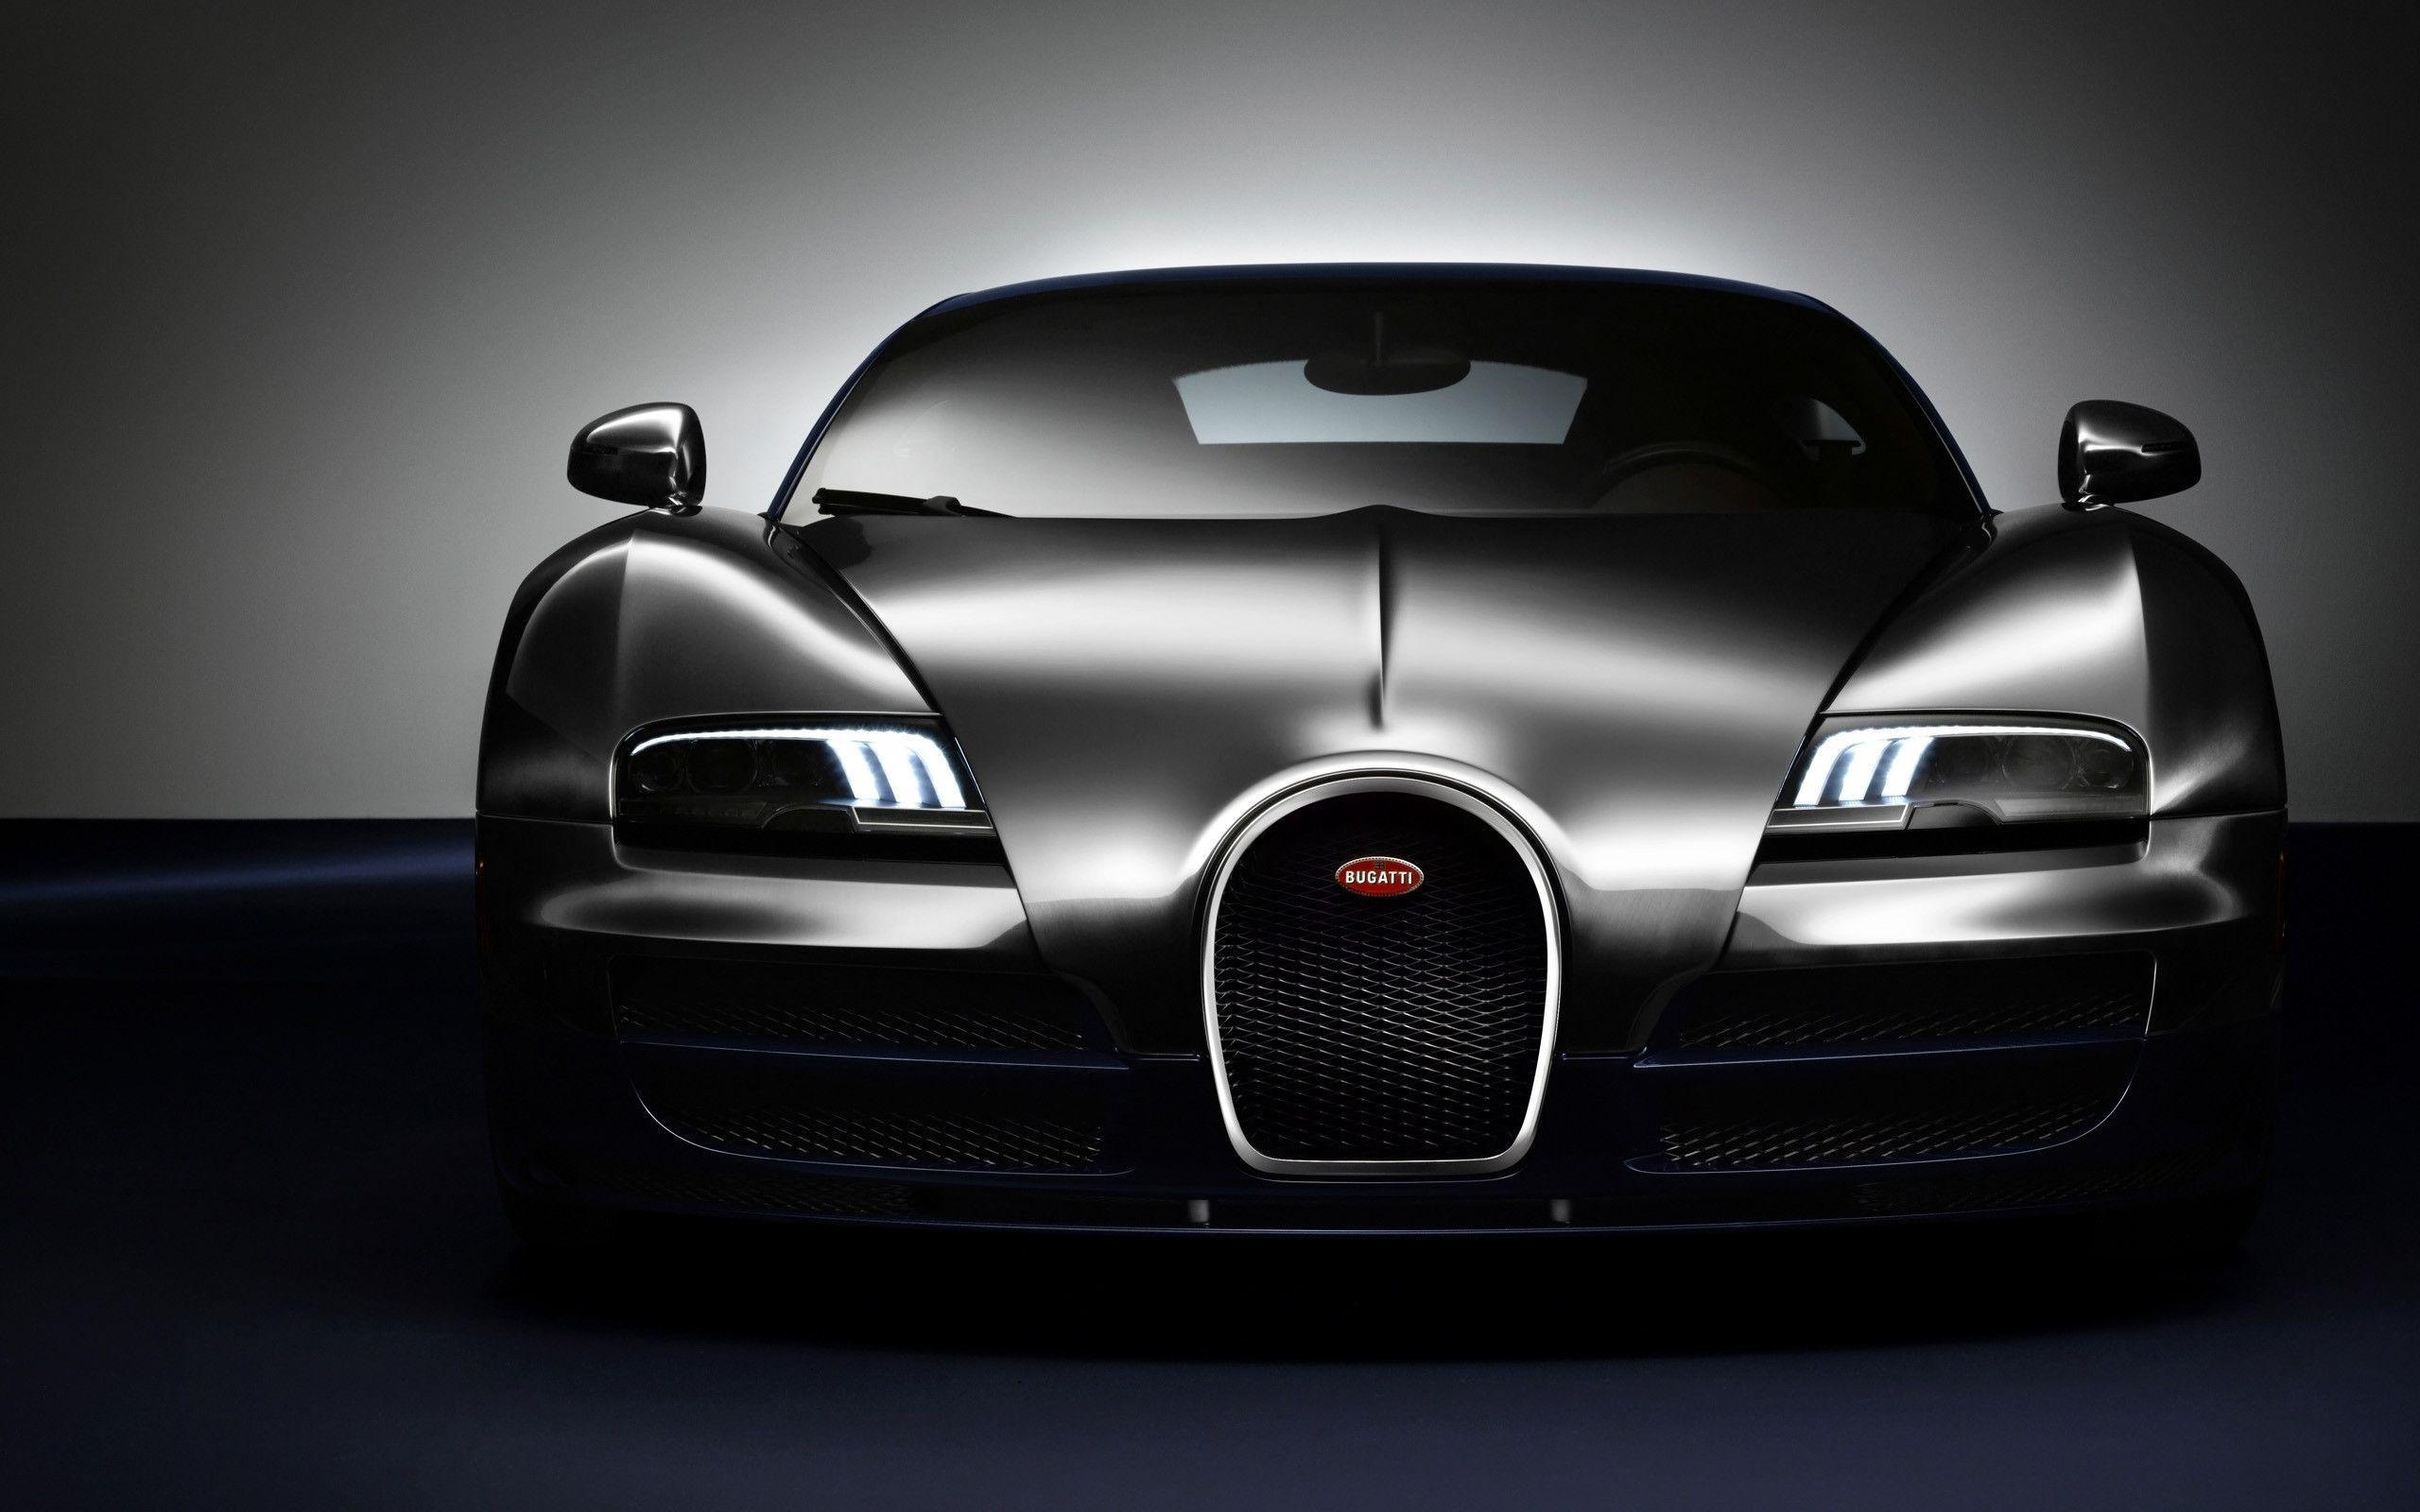 Bugatti Car Wallpapers,Pictures | Bugatti Widescreen & HD Desktop ...